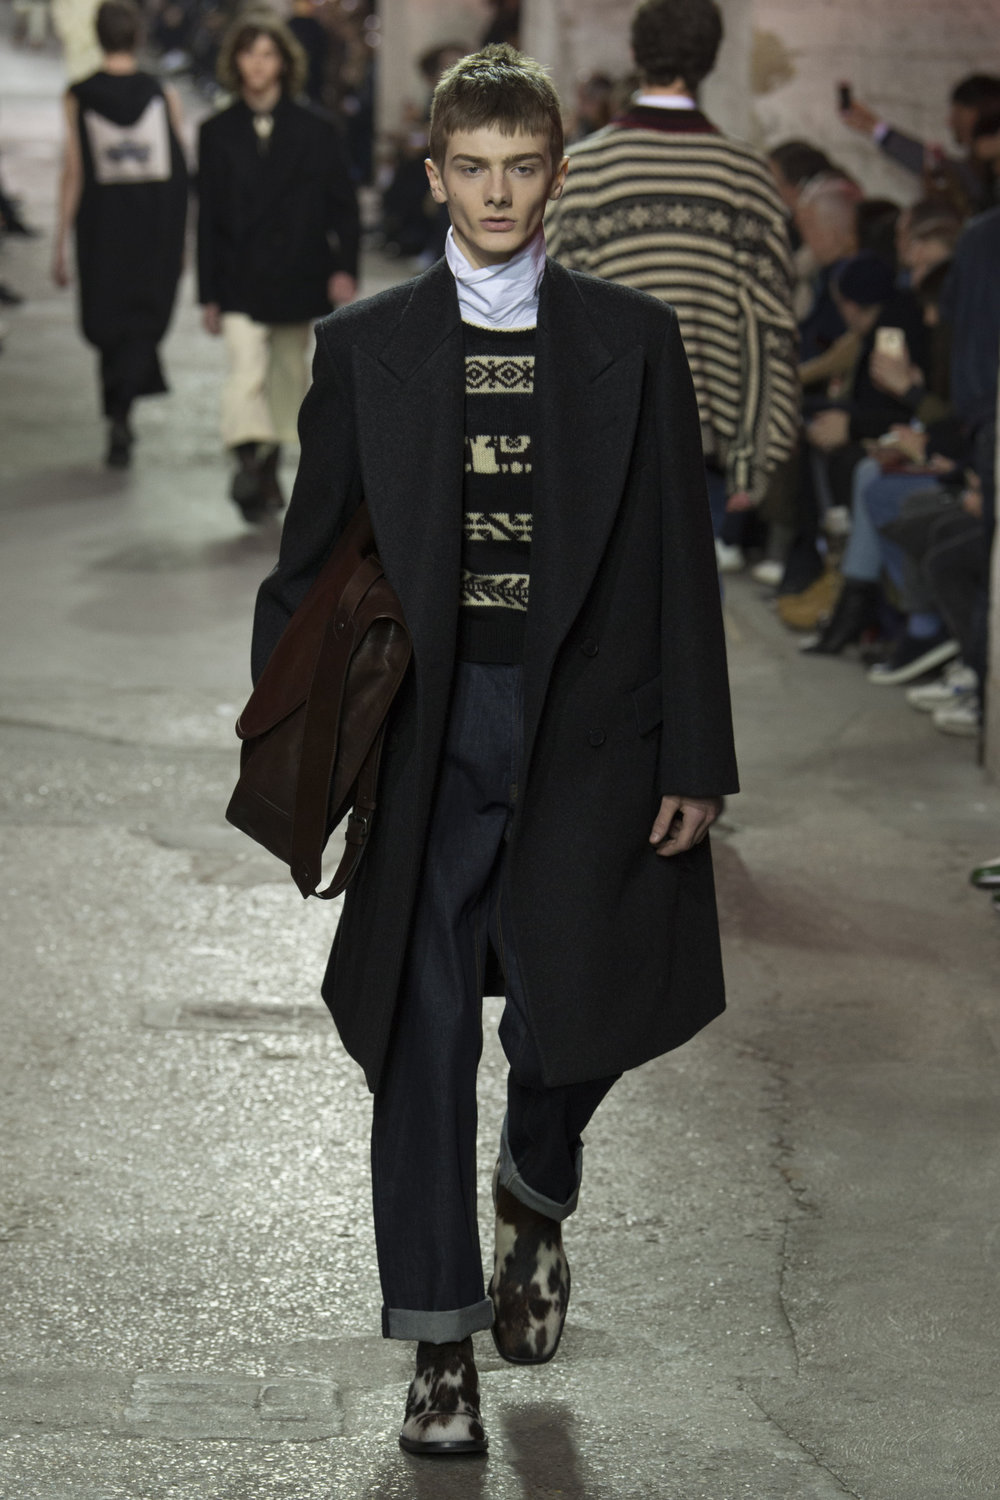 dries_van_noten_look_20_2017_aw_mens.jpeg